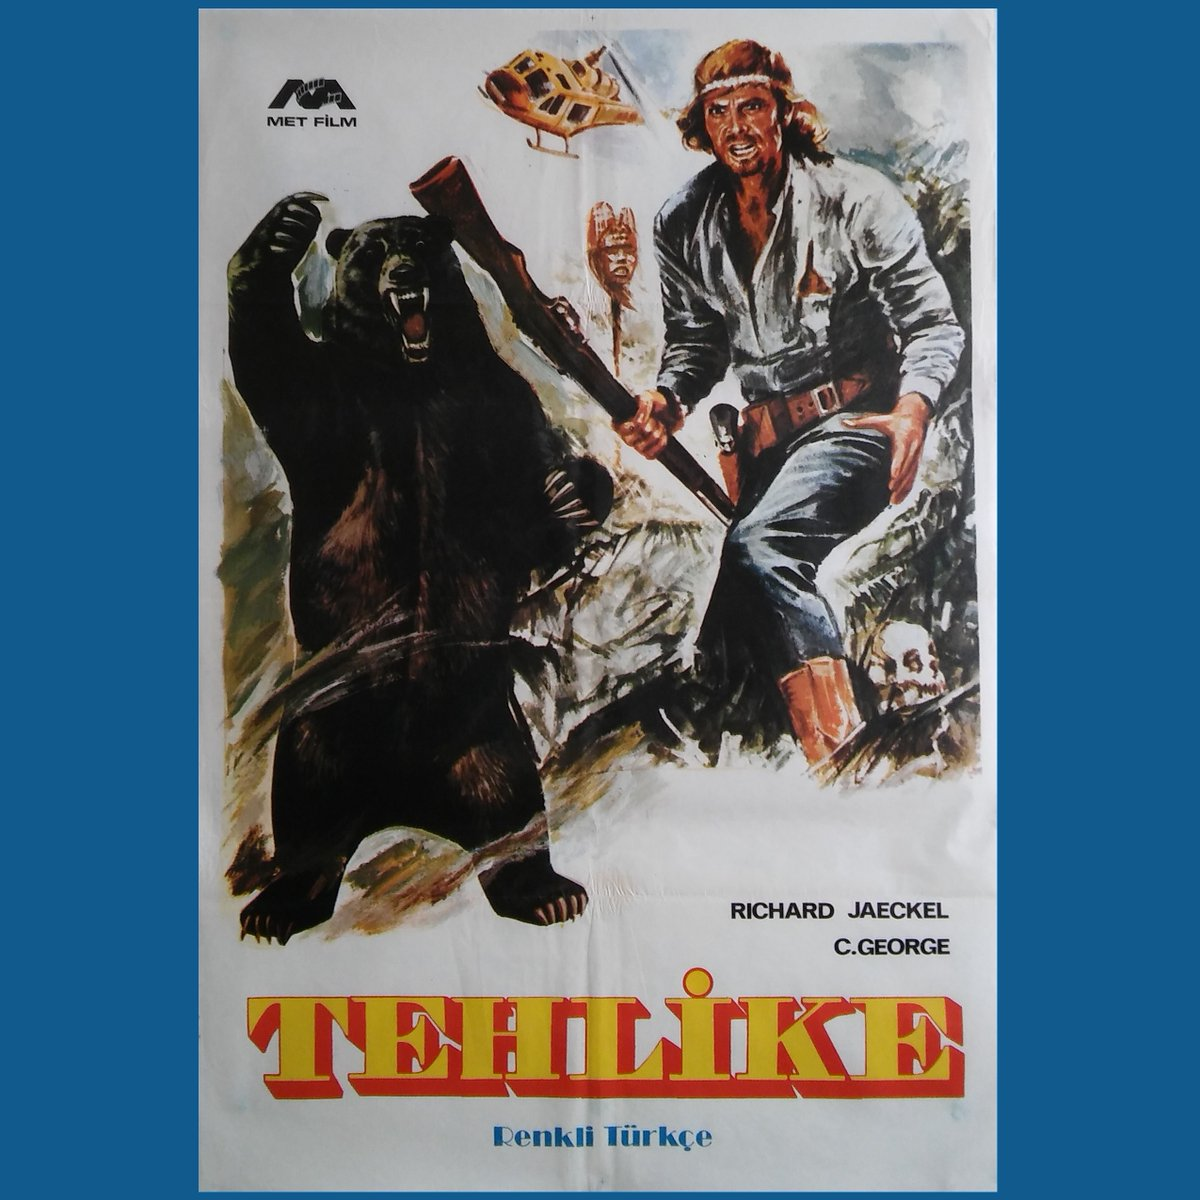 TEHLİKE 1976 Grizzly Christopher George  #animal #bear #wildanimal #creature #horror #horrormovie  Turkish edition #vintage #movie #poster #posters #movieposter #cinema #sinema #film #films #collection #photo #artpic.twitter.com/5IzuqcdIO8